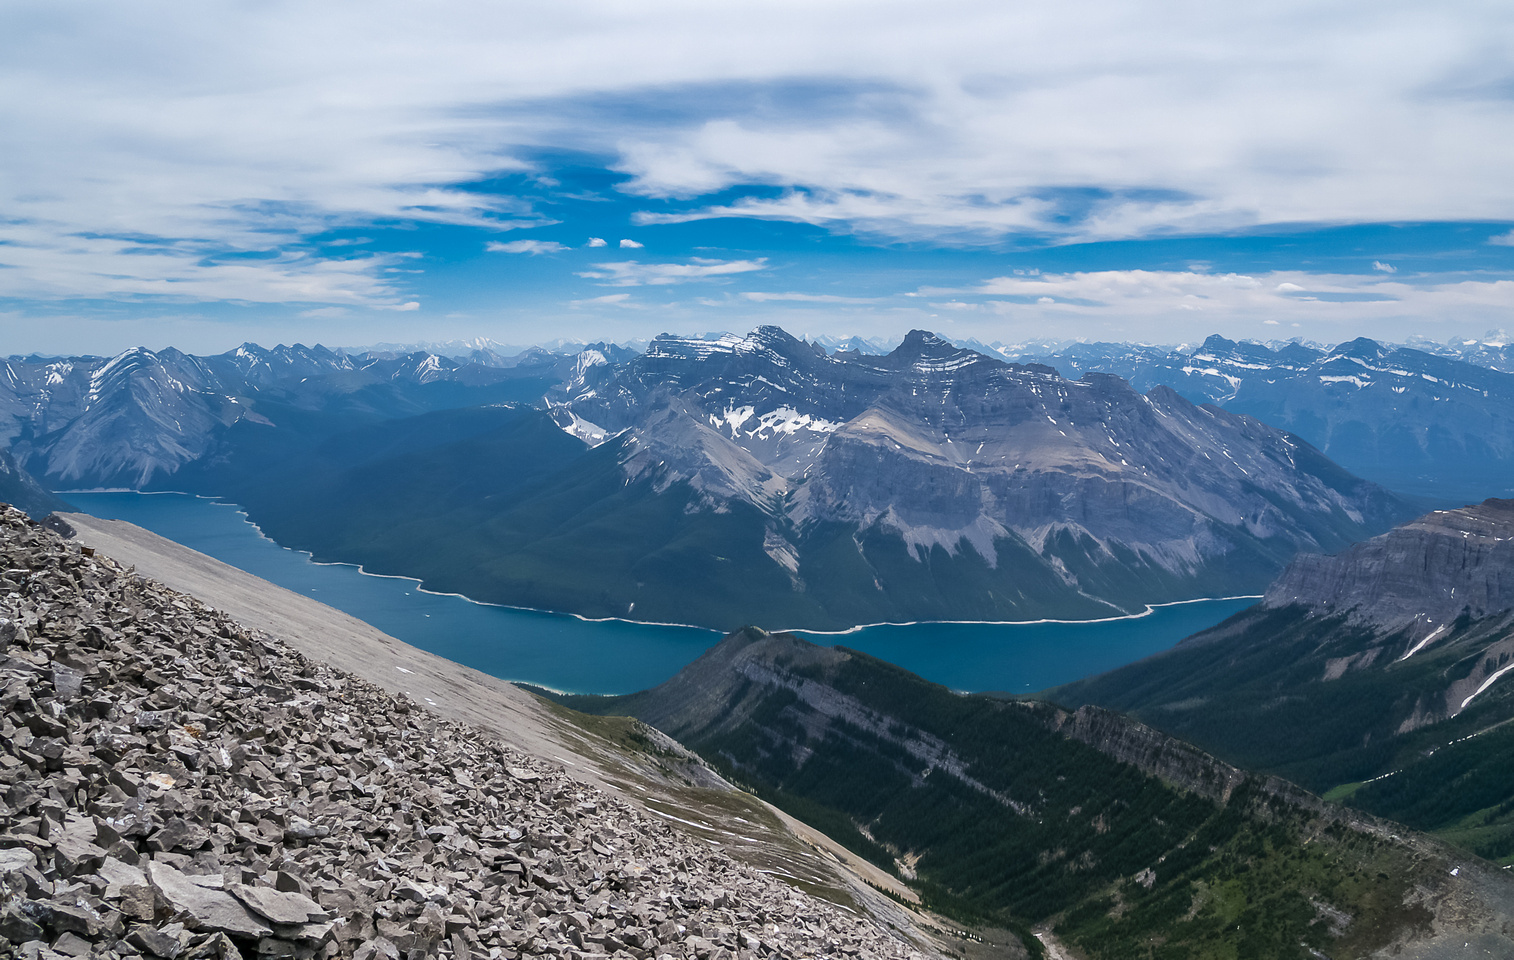 Lake Minnewanka with our descent ridge at lower center.